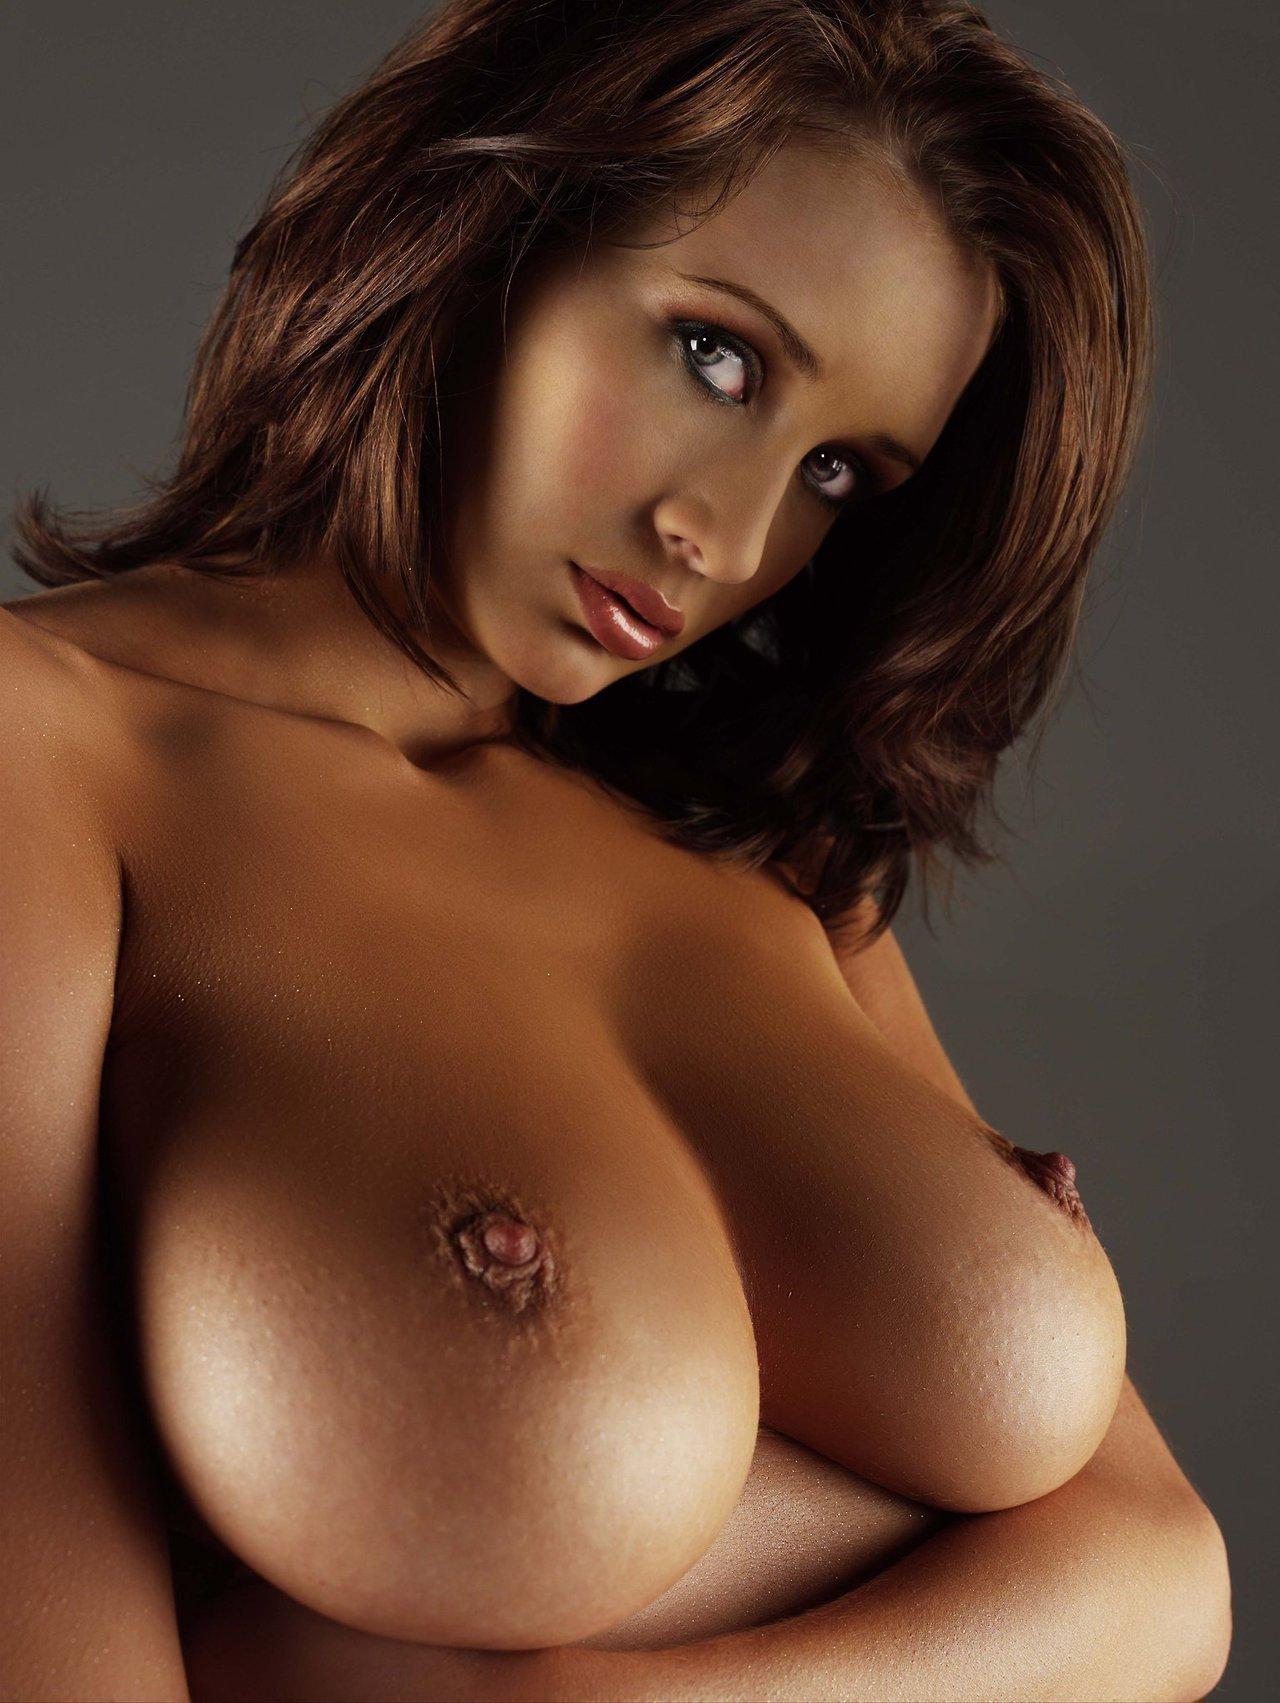 Sexy hot women naked with big boobs naked